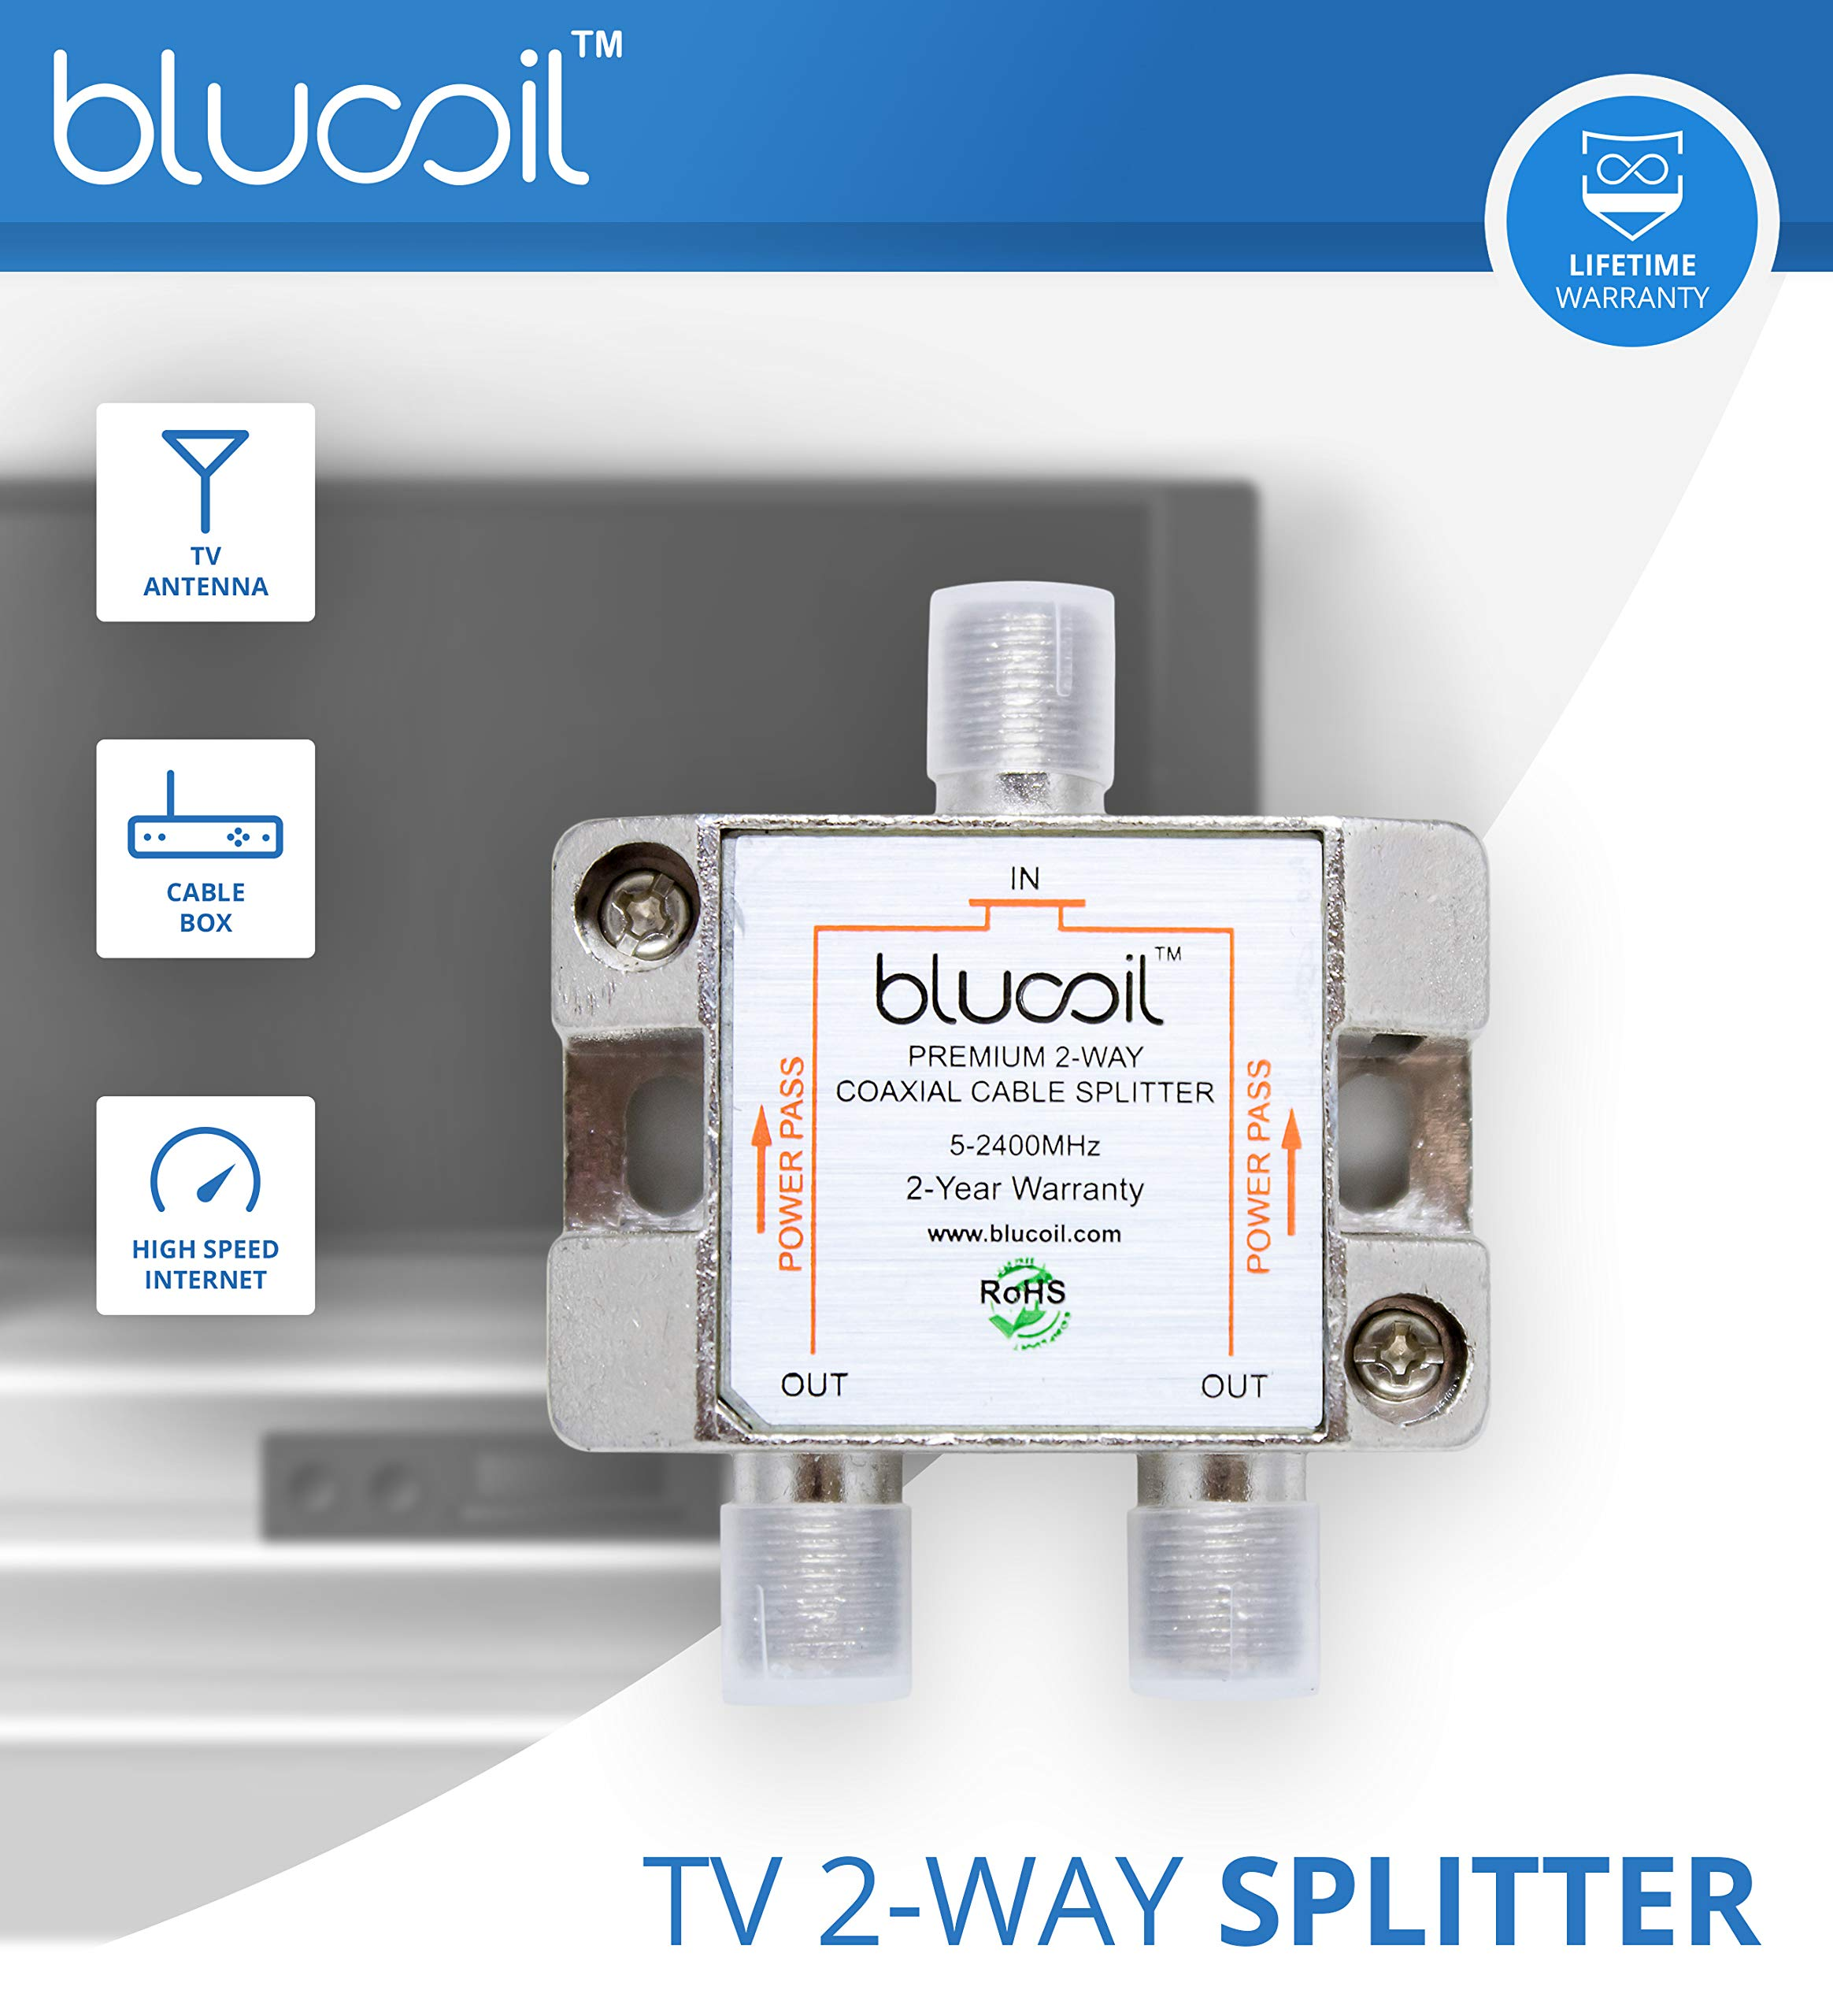 SiliconDust HDHomeRun Connect Duo HDHR5-2US Tuner (Renewed) Bundle with Blucoil 2-Way TV Coaxial Cable Splitter and 5-Pack of Reusable Cable Ties by blucoil (Image #6)